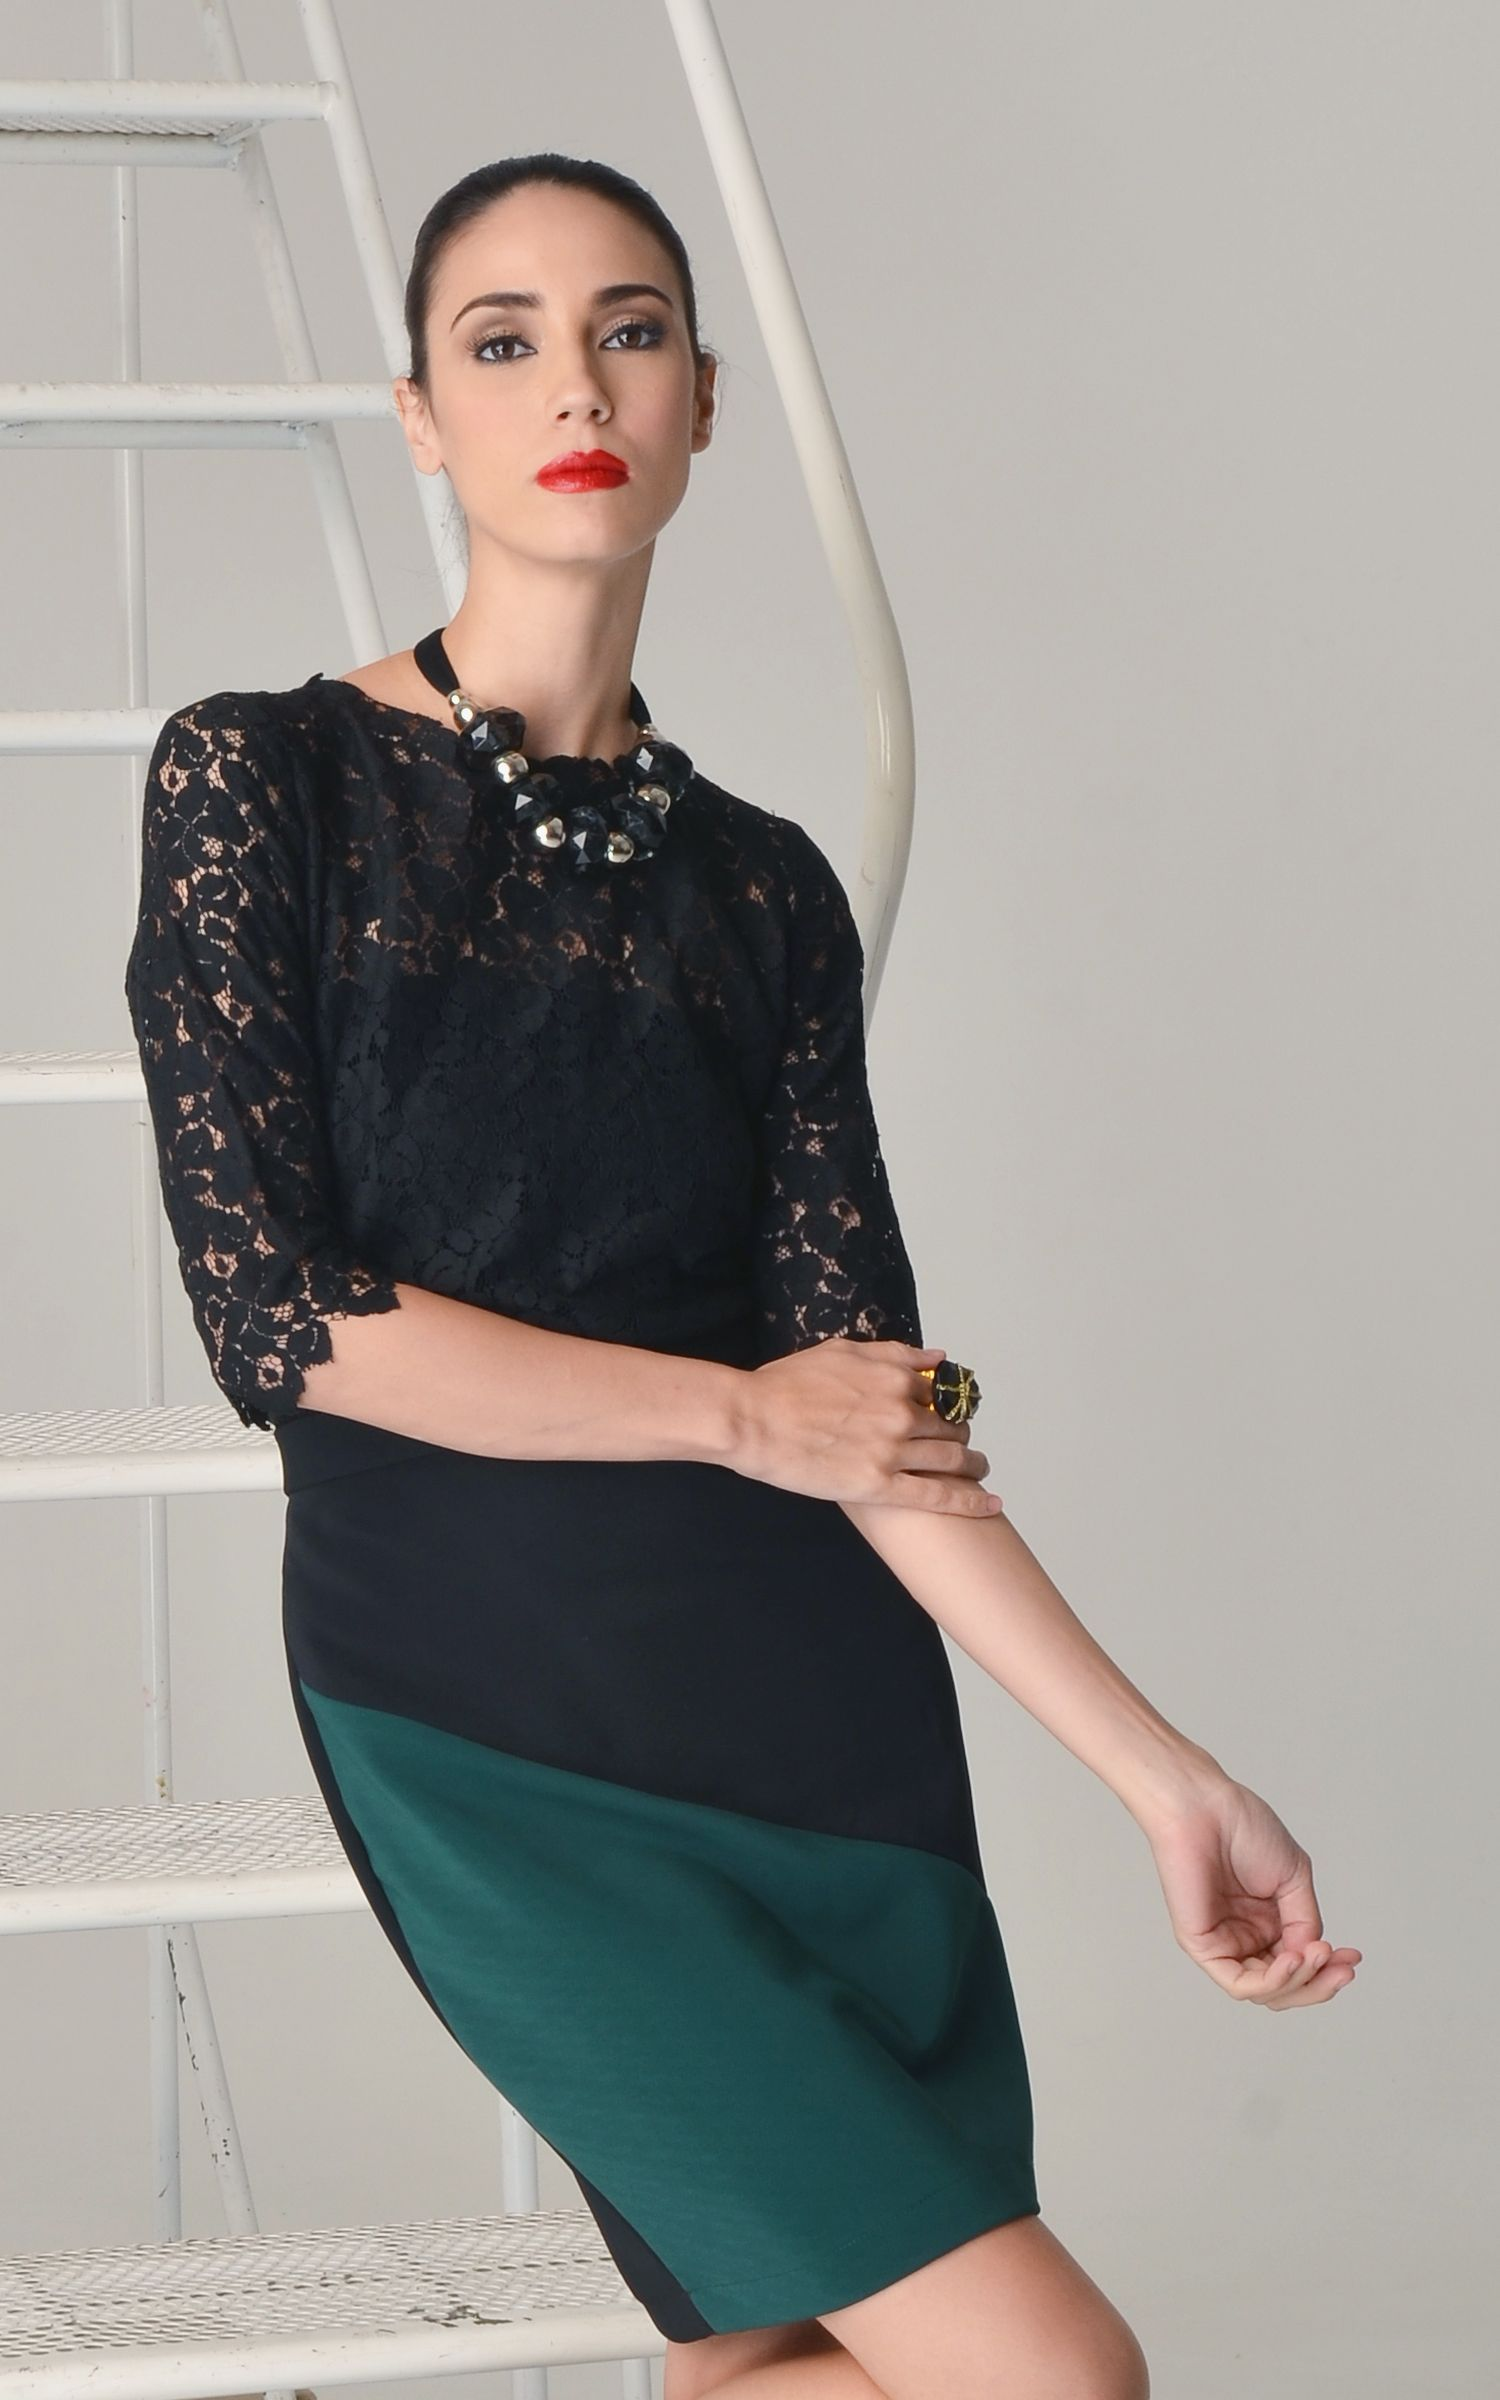 Black Lace Top, Color Blocked Skirt